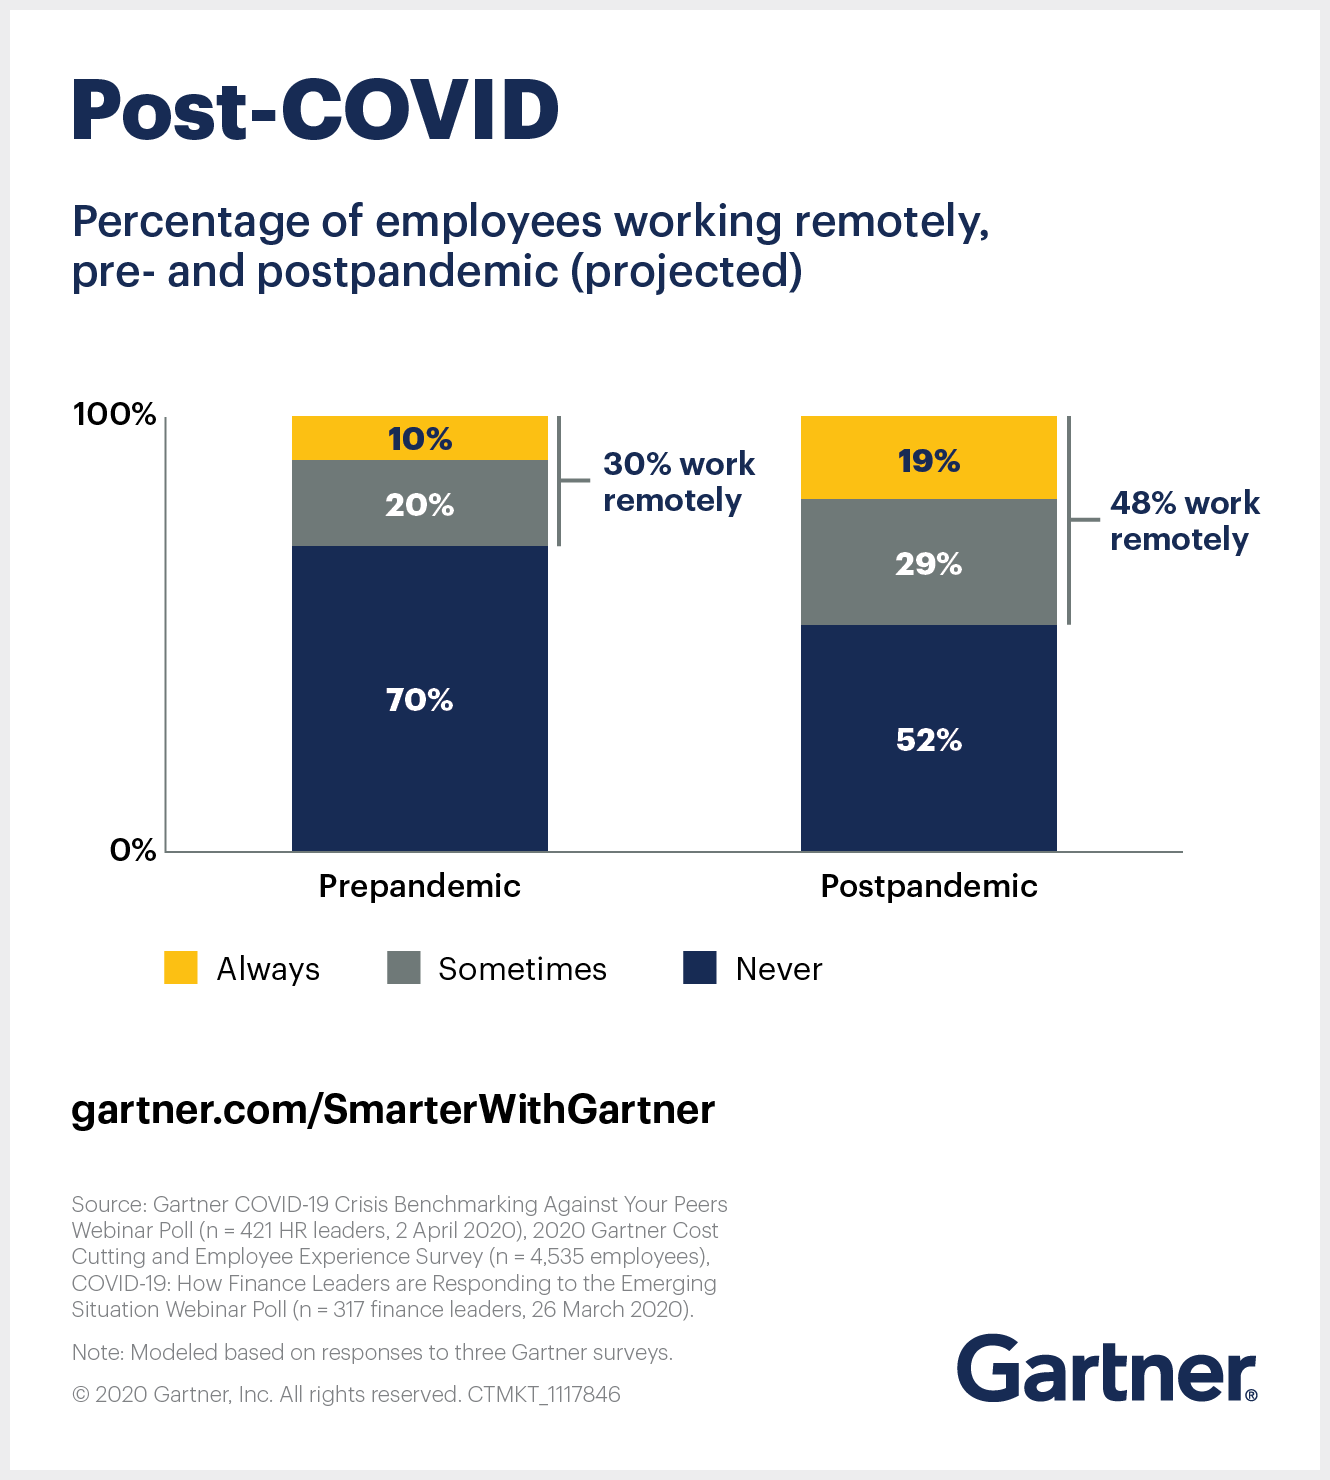 Gartner shows the percentage of employees working remotely, pre- and postpandemic (projected).